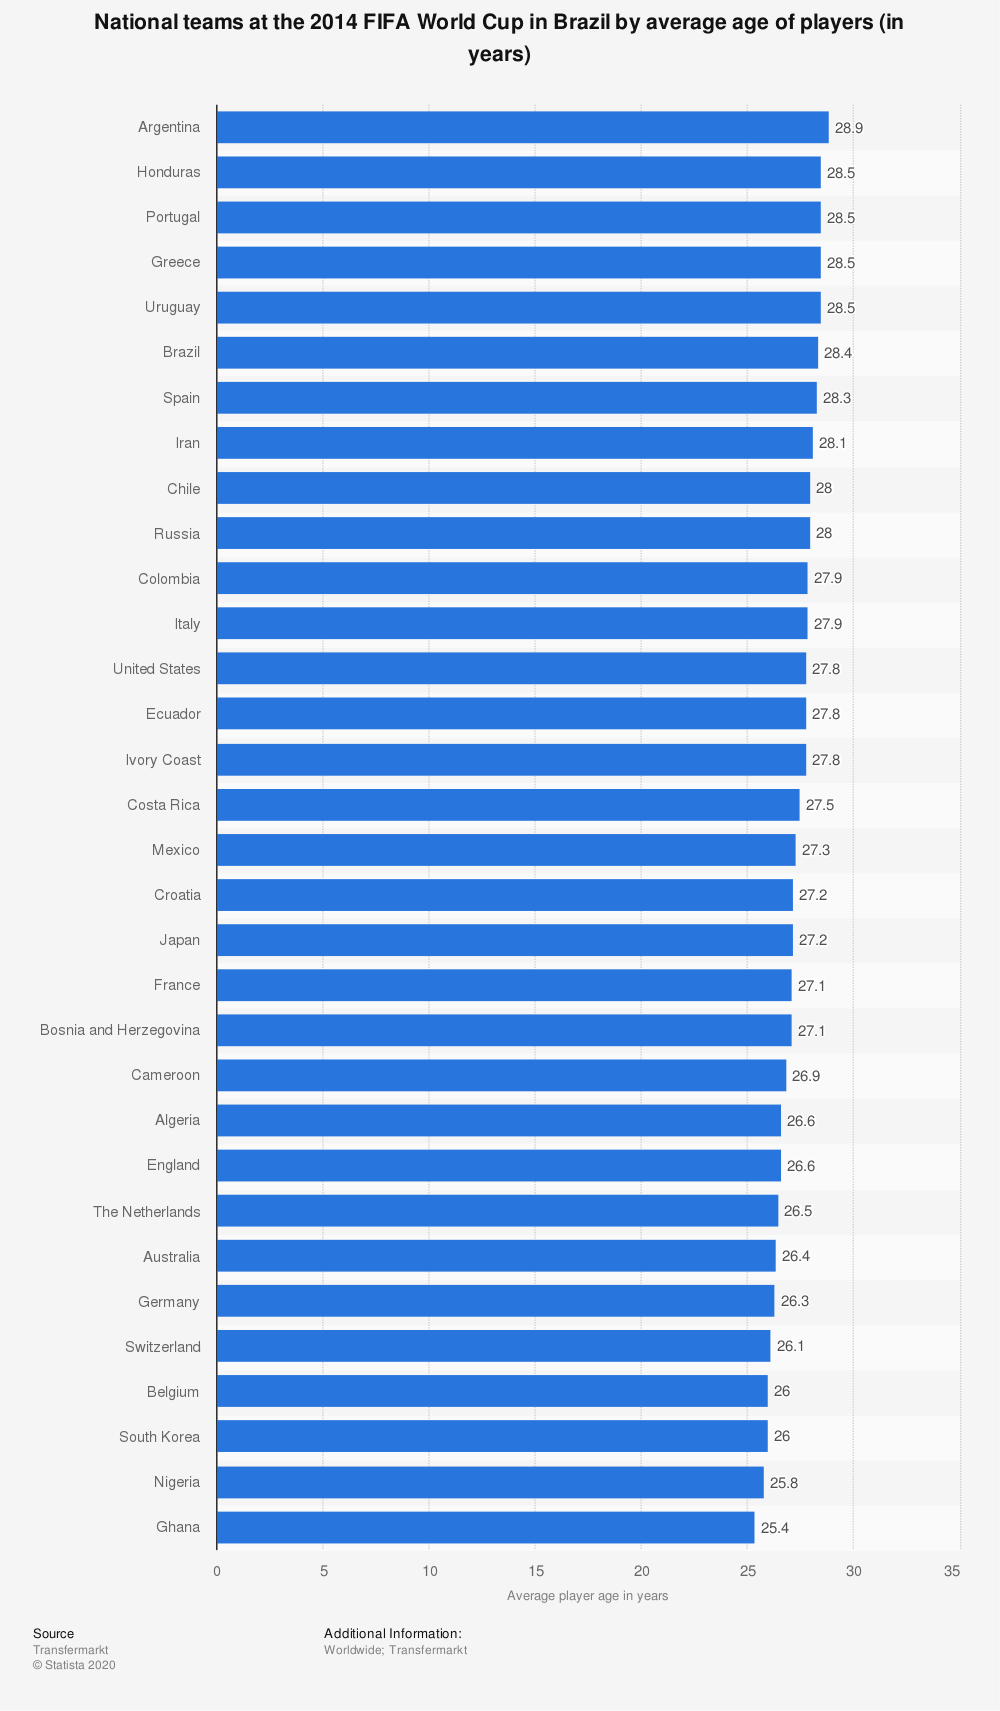 Statistic: National teams at the 2014 FIFA World Cup in Brazil by average age of players (in years) | Statista